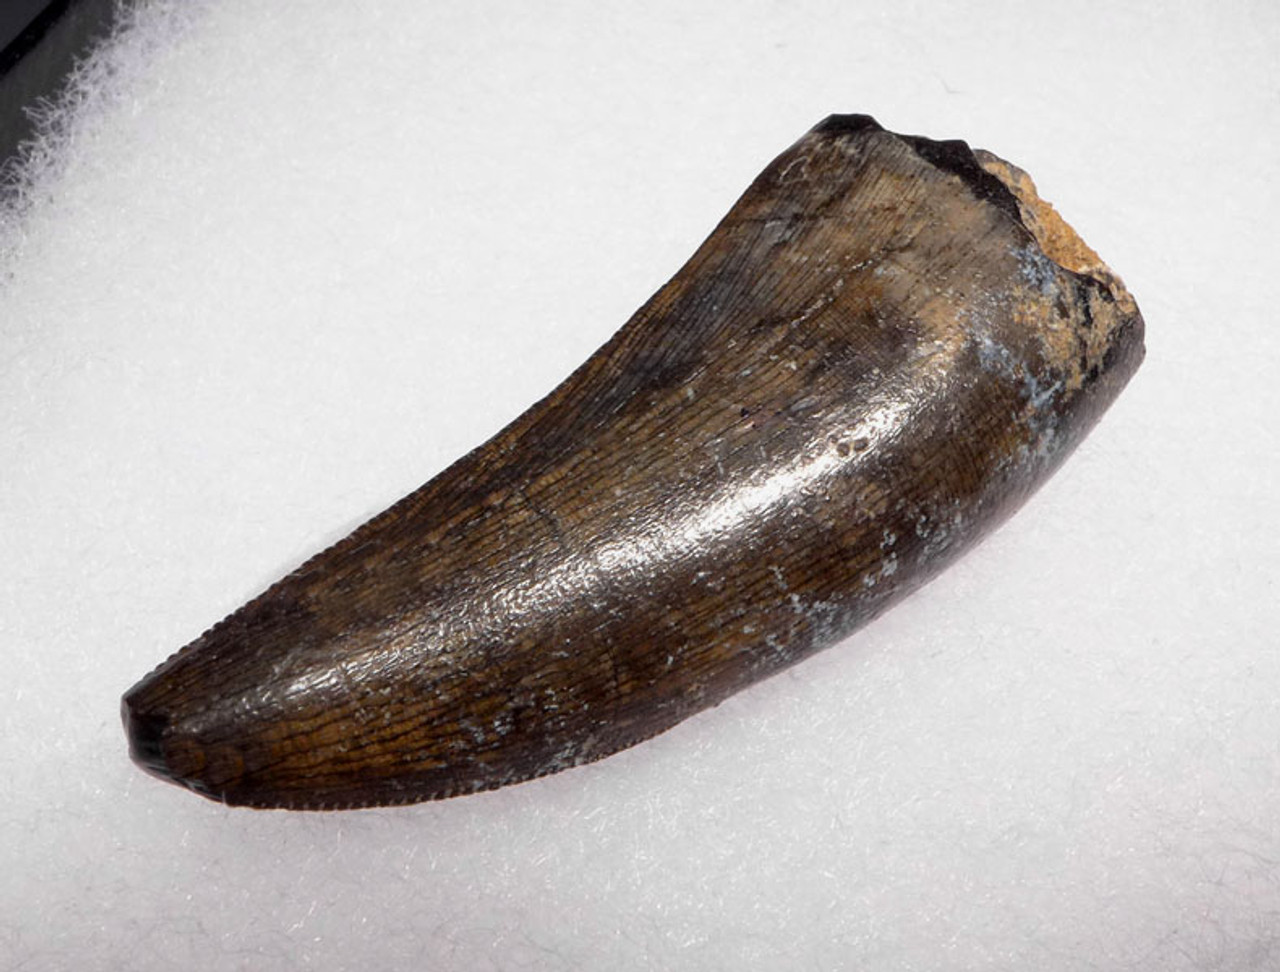 INCREDIBLY RARE AFROVENATOR APEX PREDATOR FOSSIL DINOSAUR TOOTH FROM TENERE